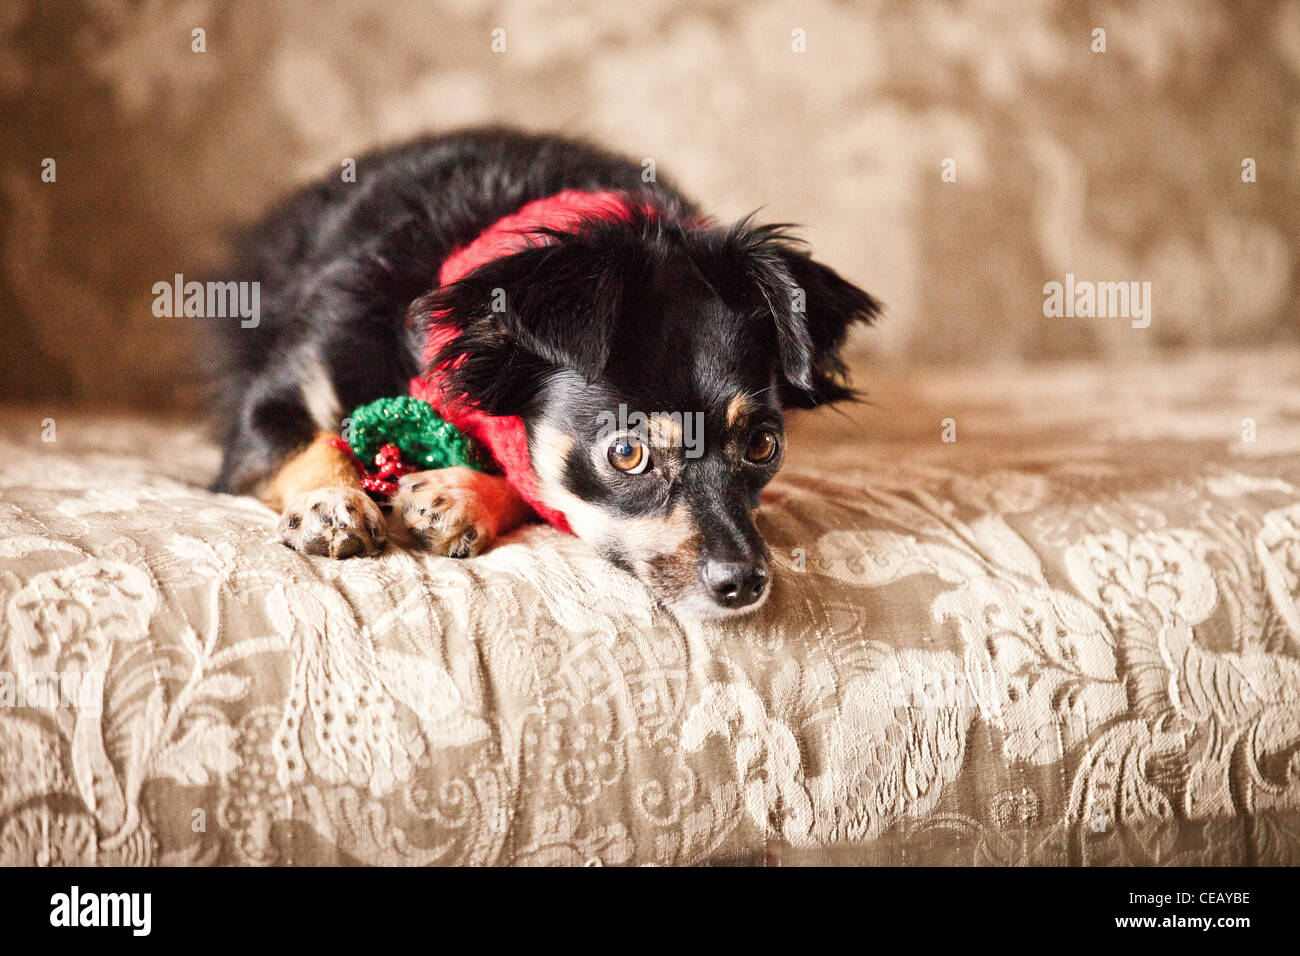 Portrait of dog wearing scarf Photo Stock